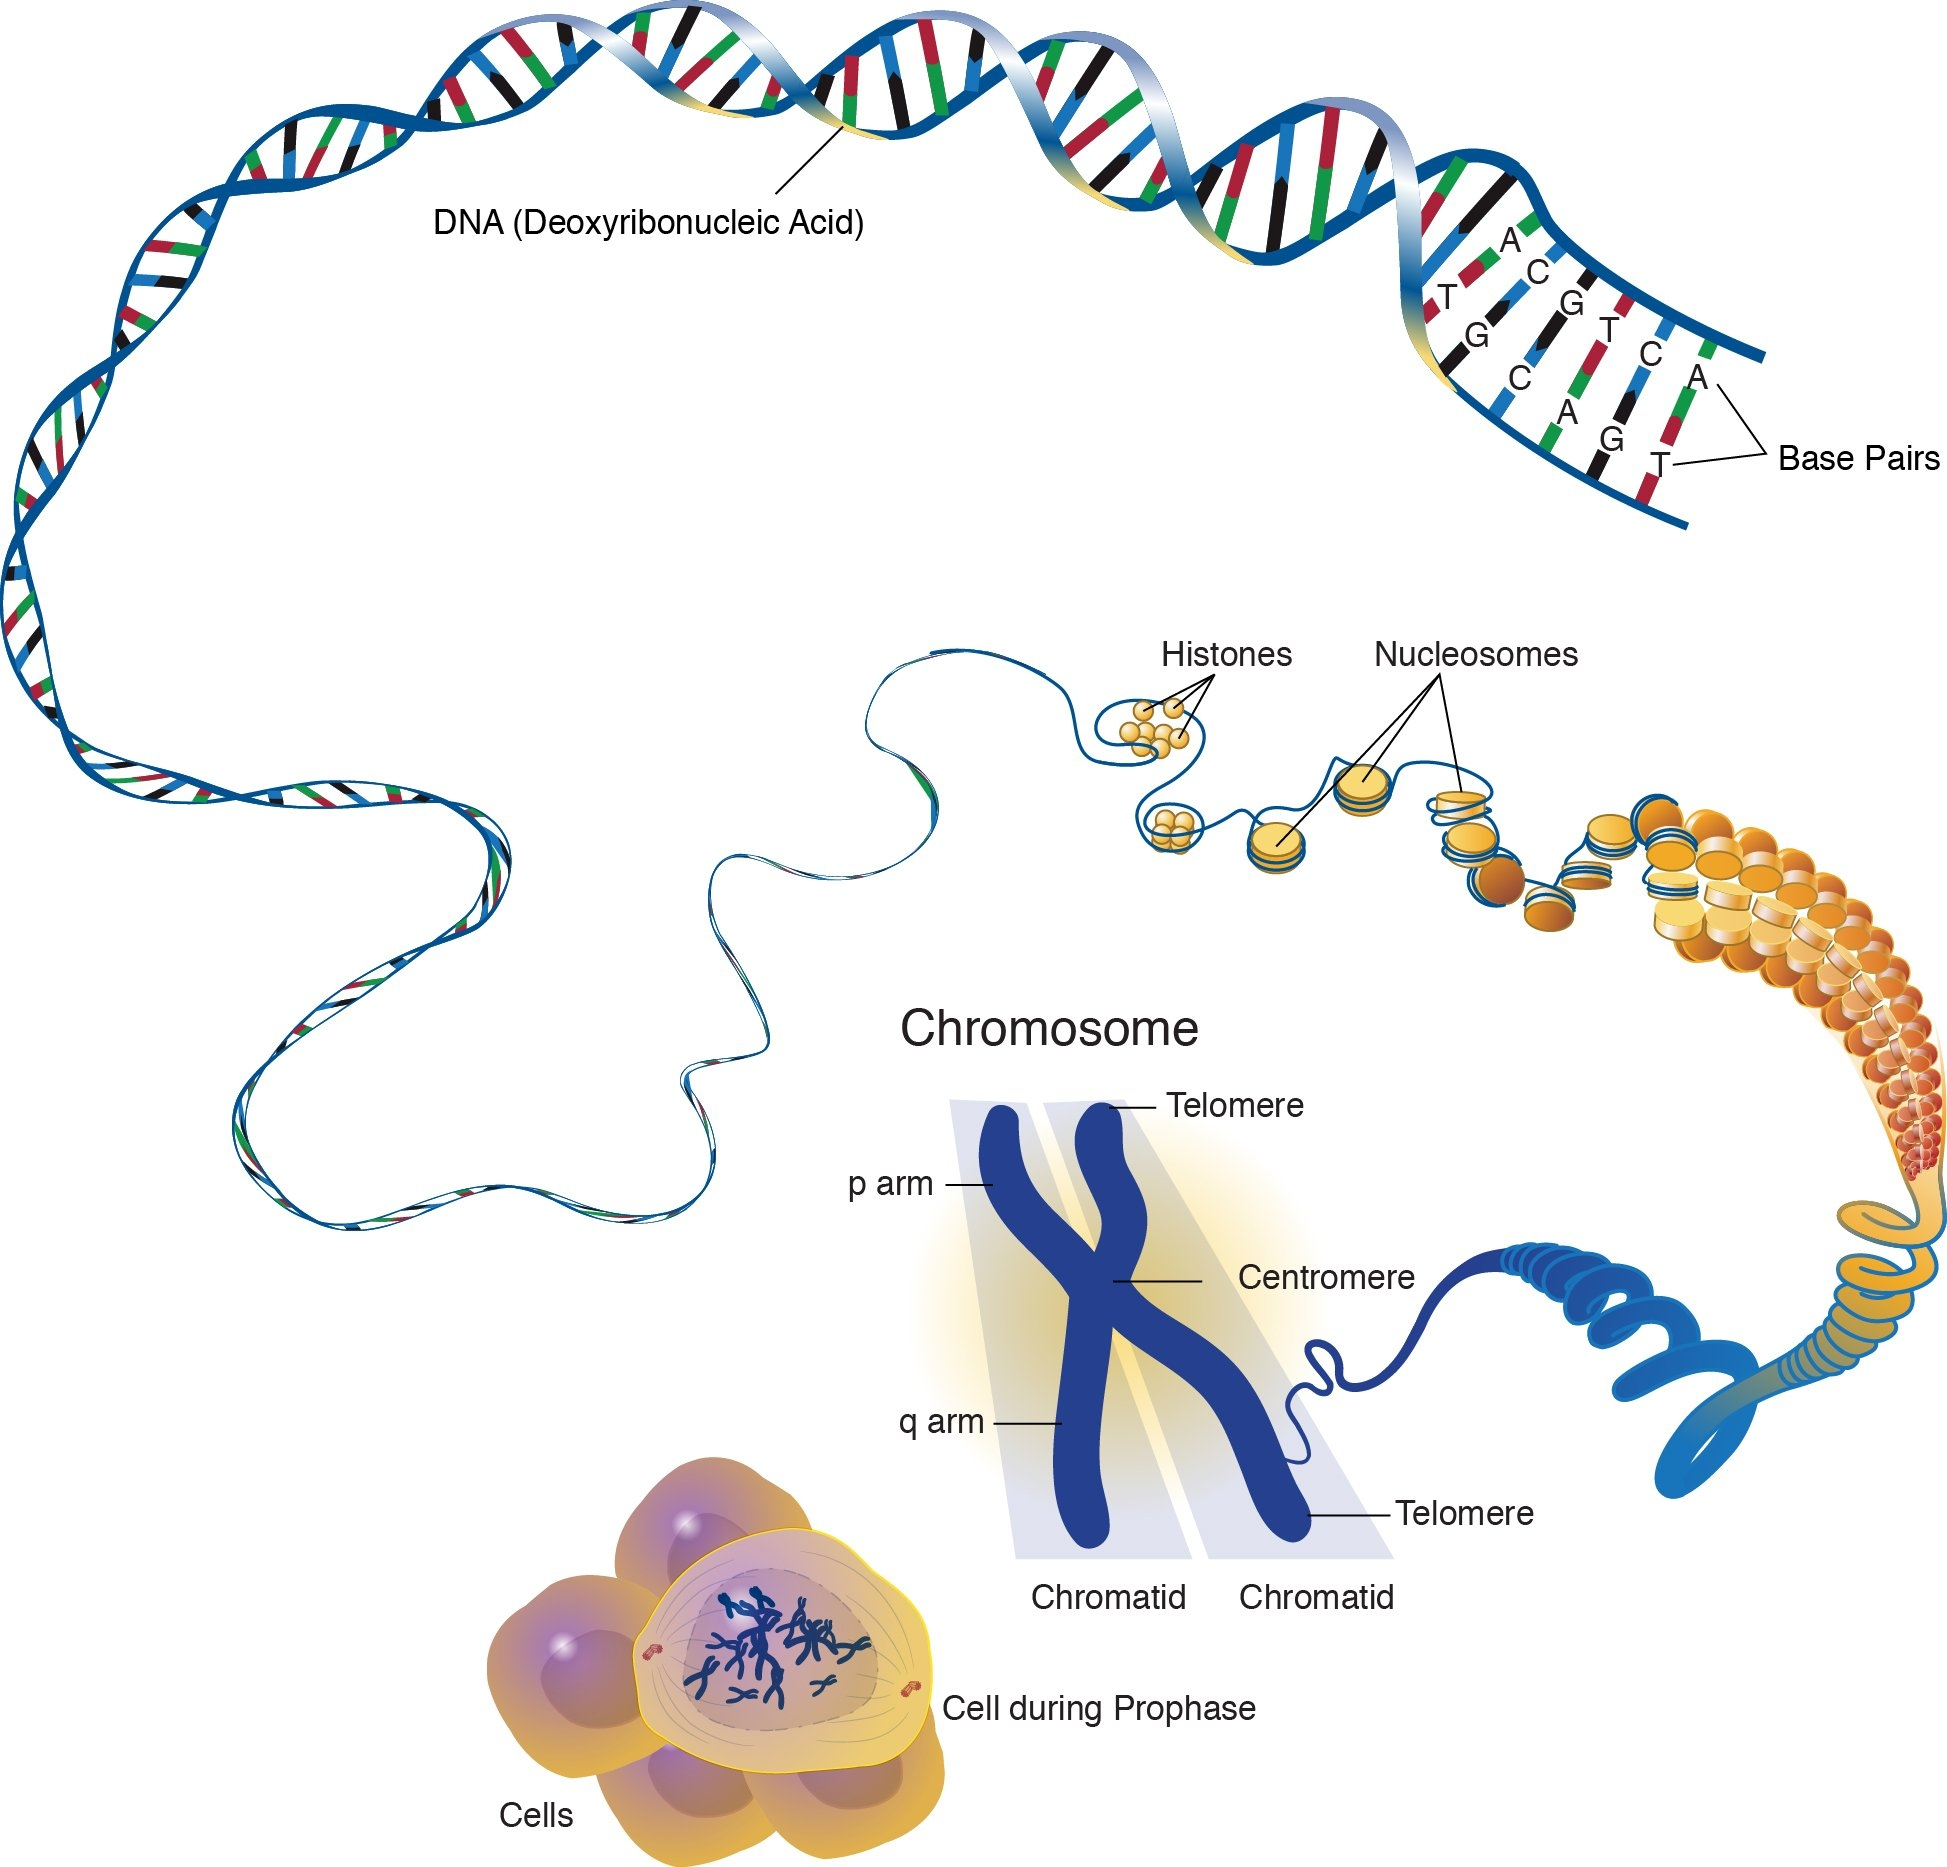 Cells and chromosome and DNA